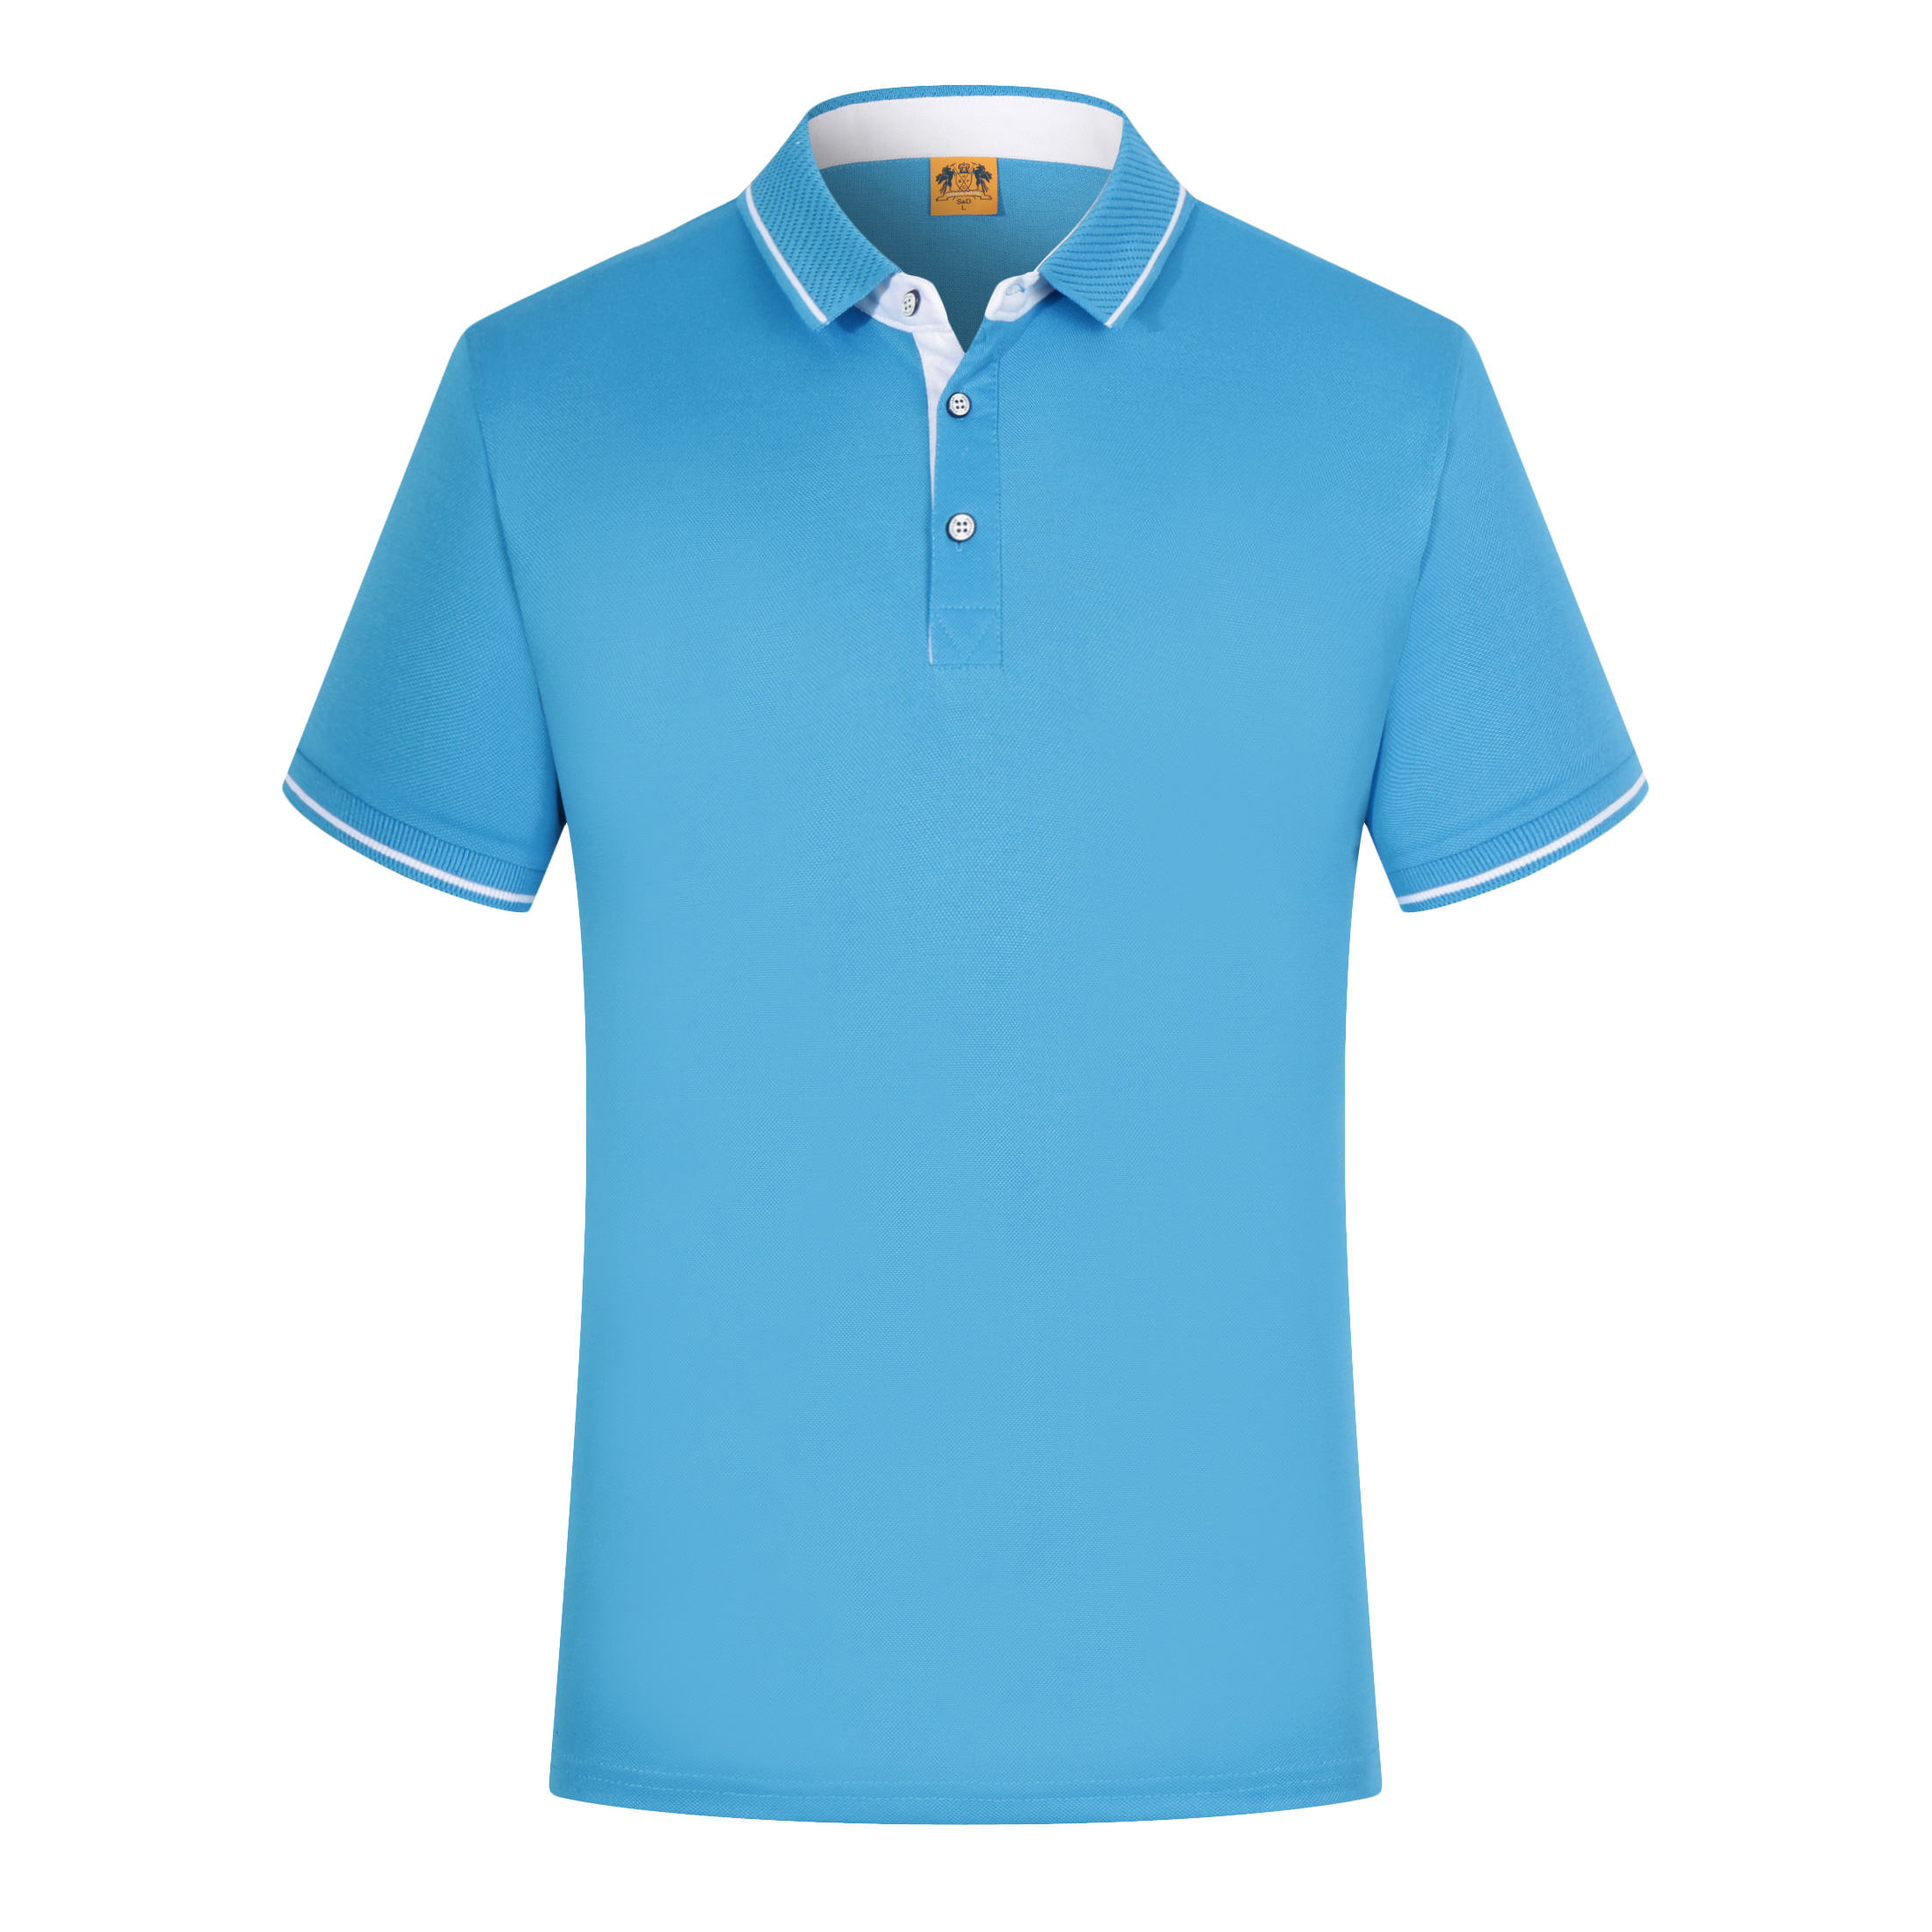 Competitive price 1 dollar garment logo design school polo t shirts